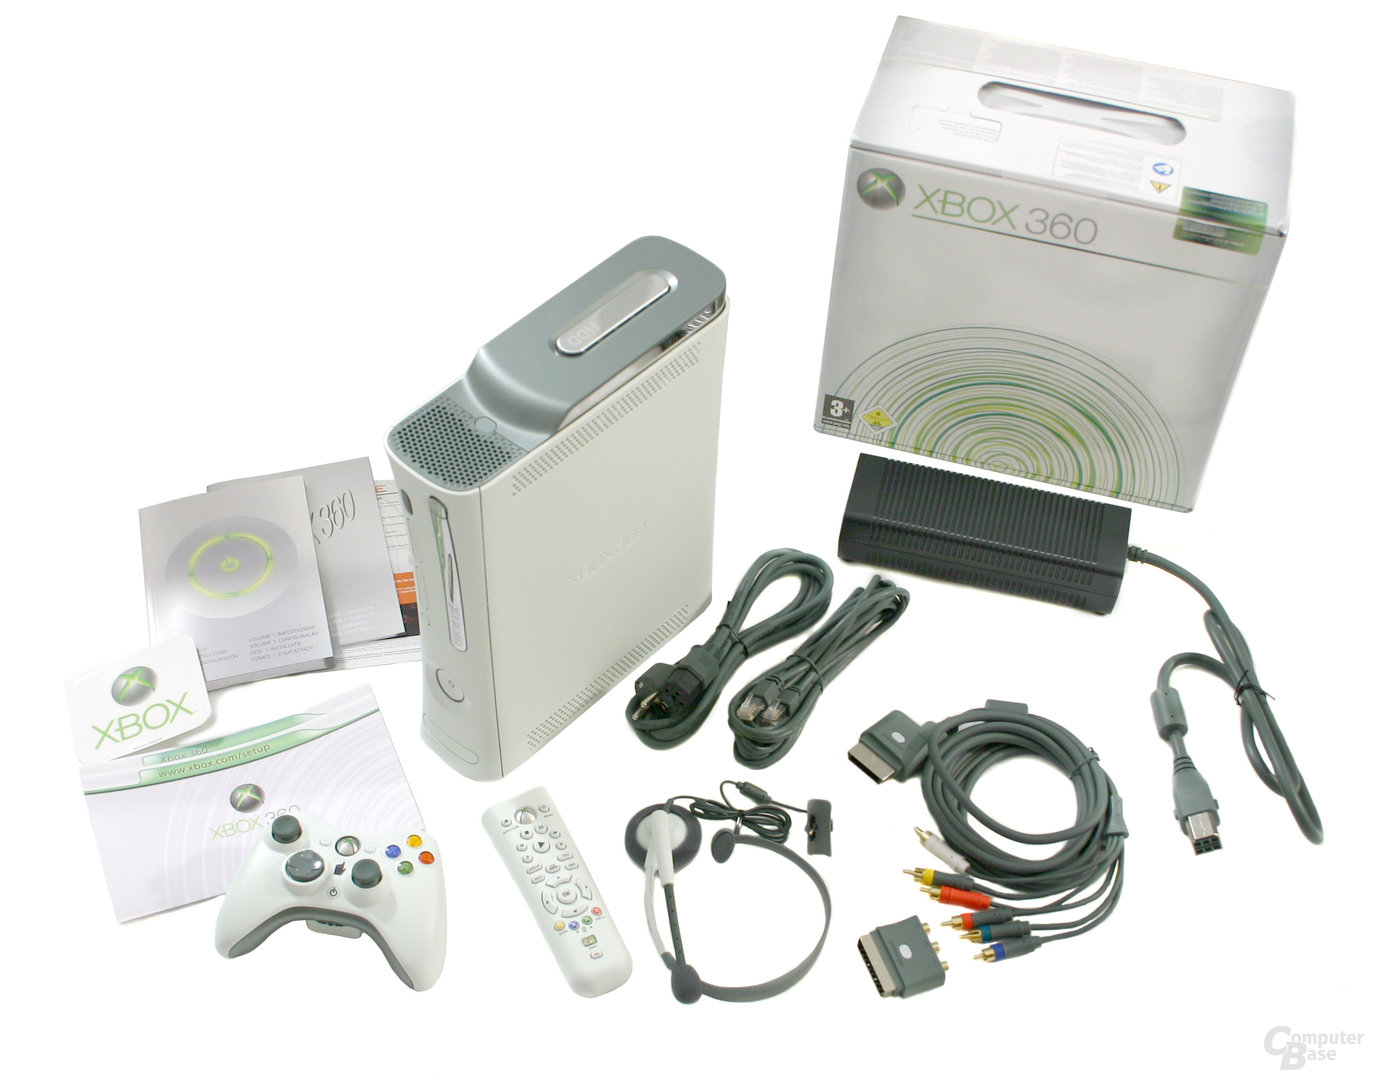 Xbox 360 - Lieferumfang